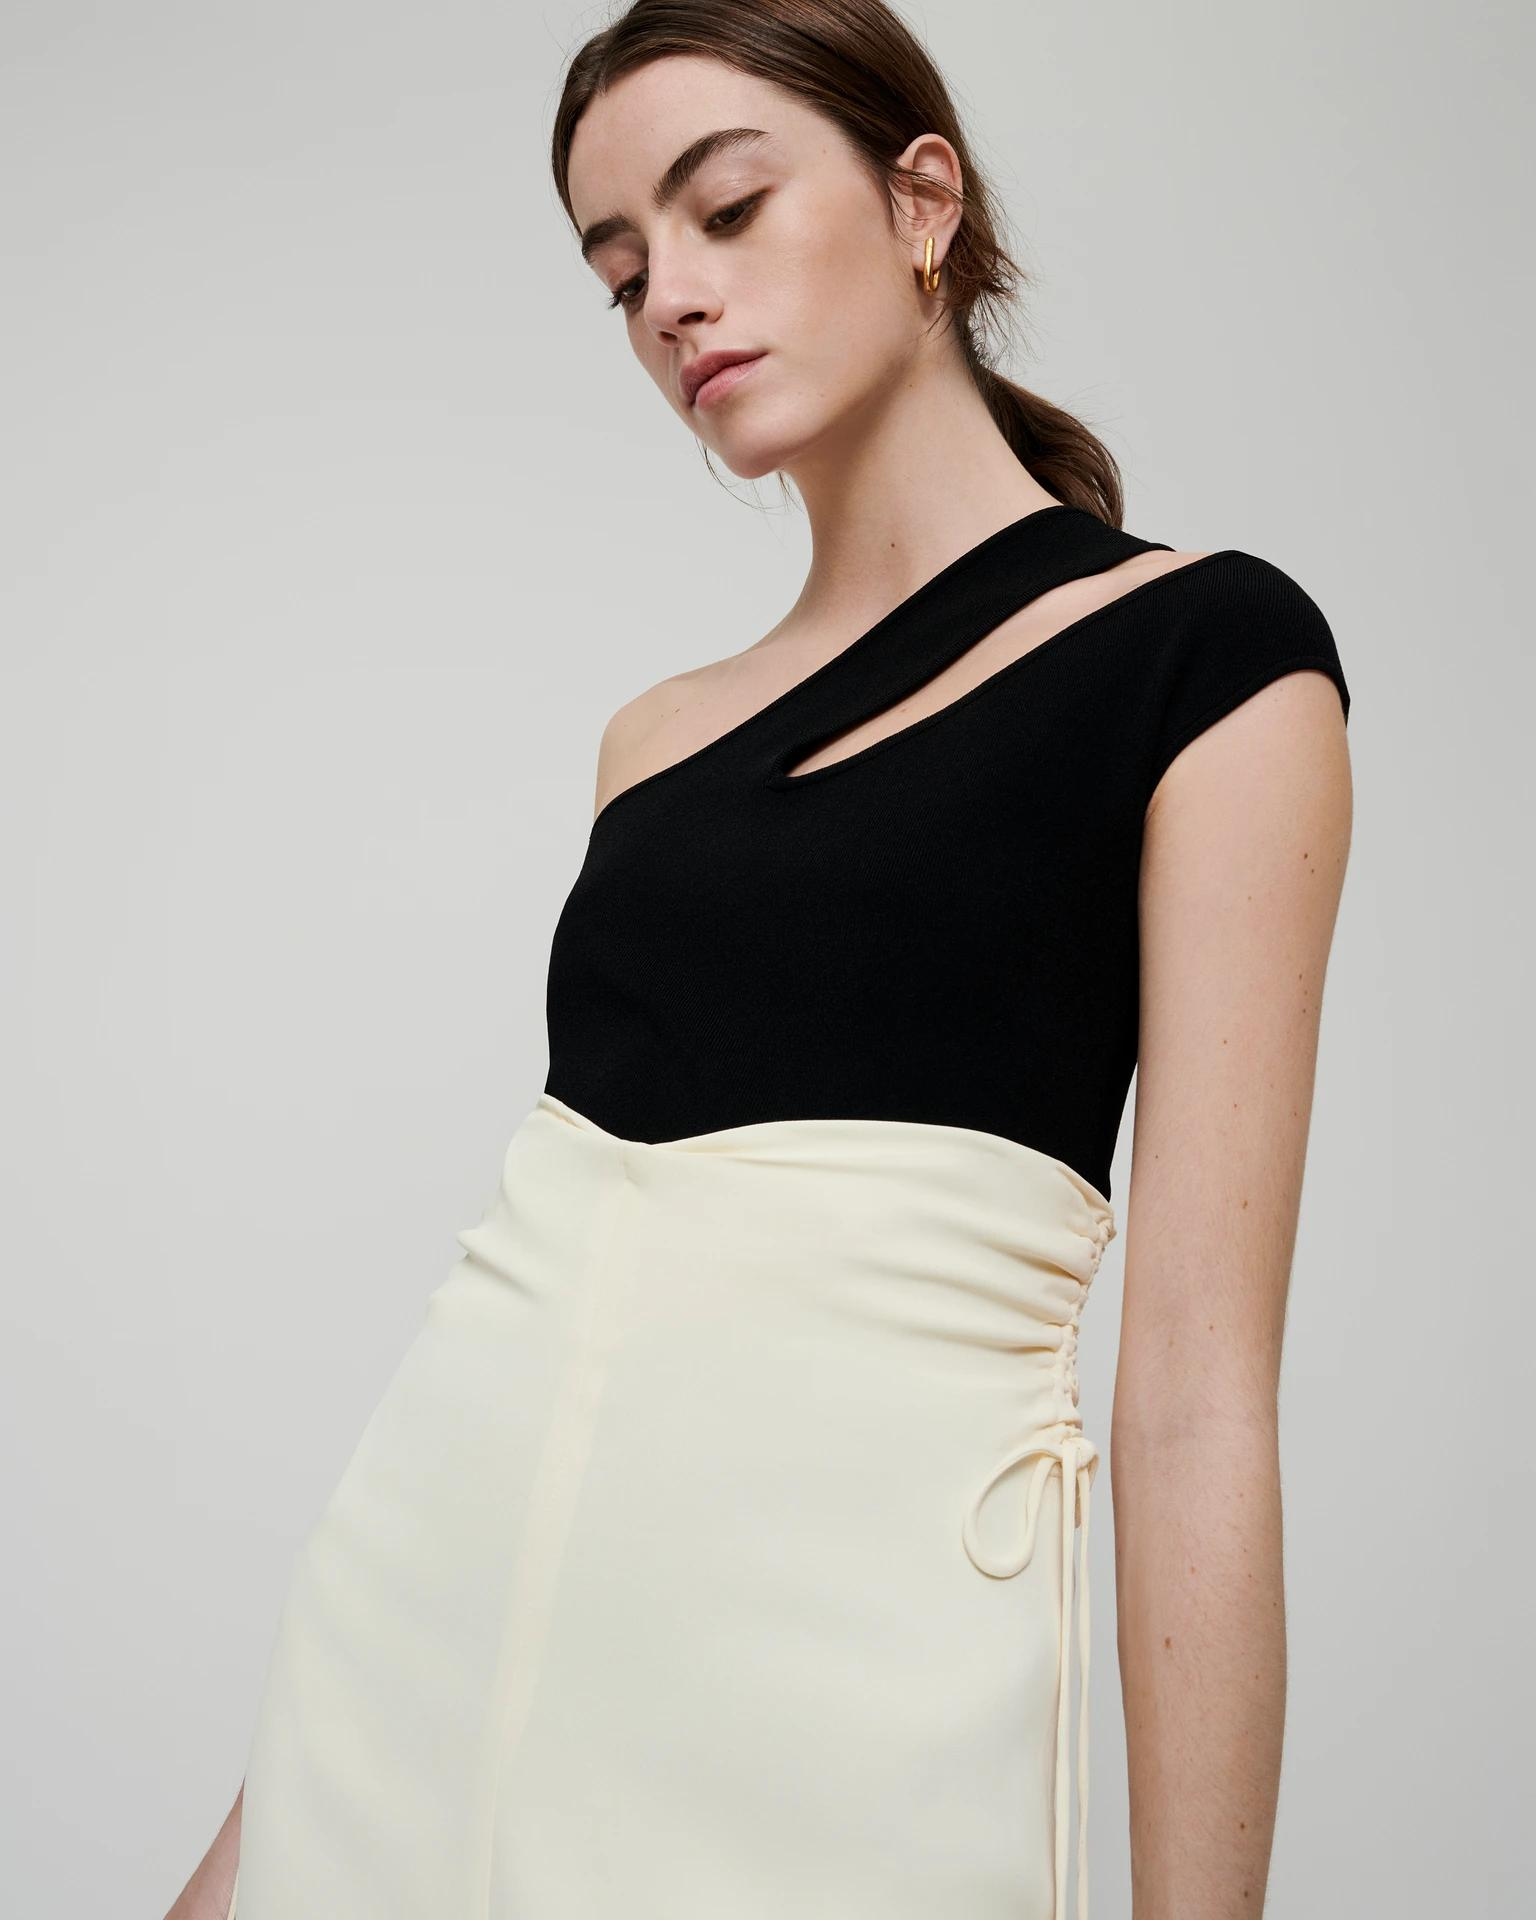 ARLET - Knitted cut-out top - Black 2